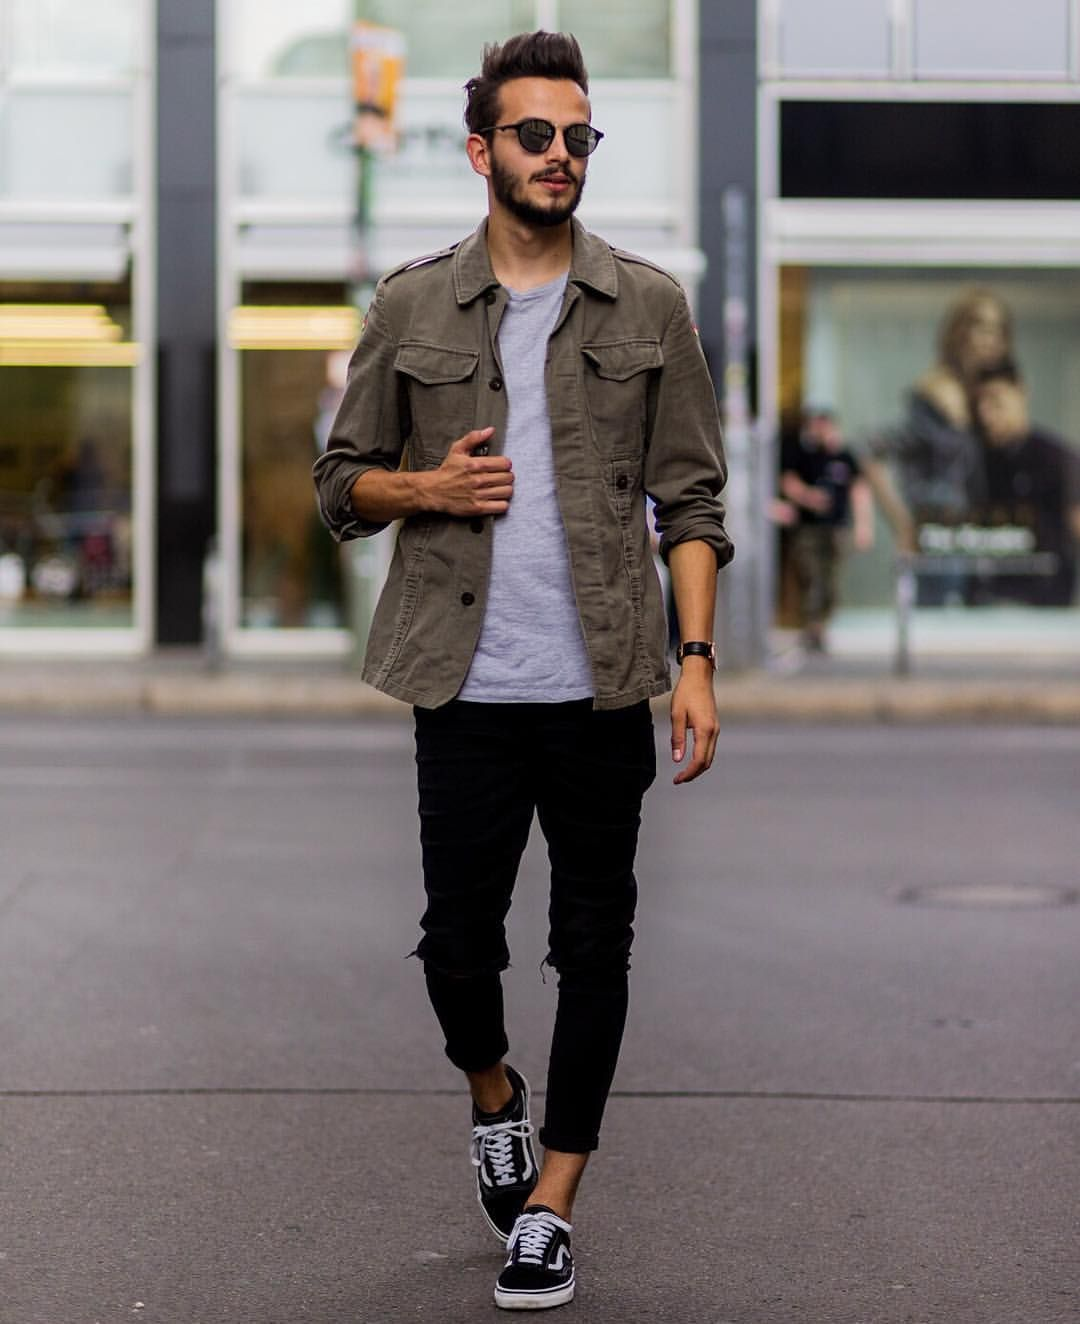 Buy Hipster mens fashion photo picture trends